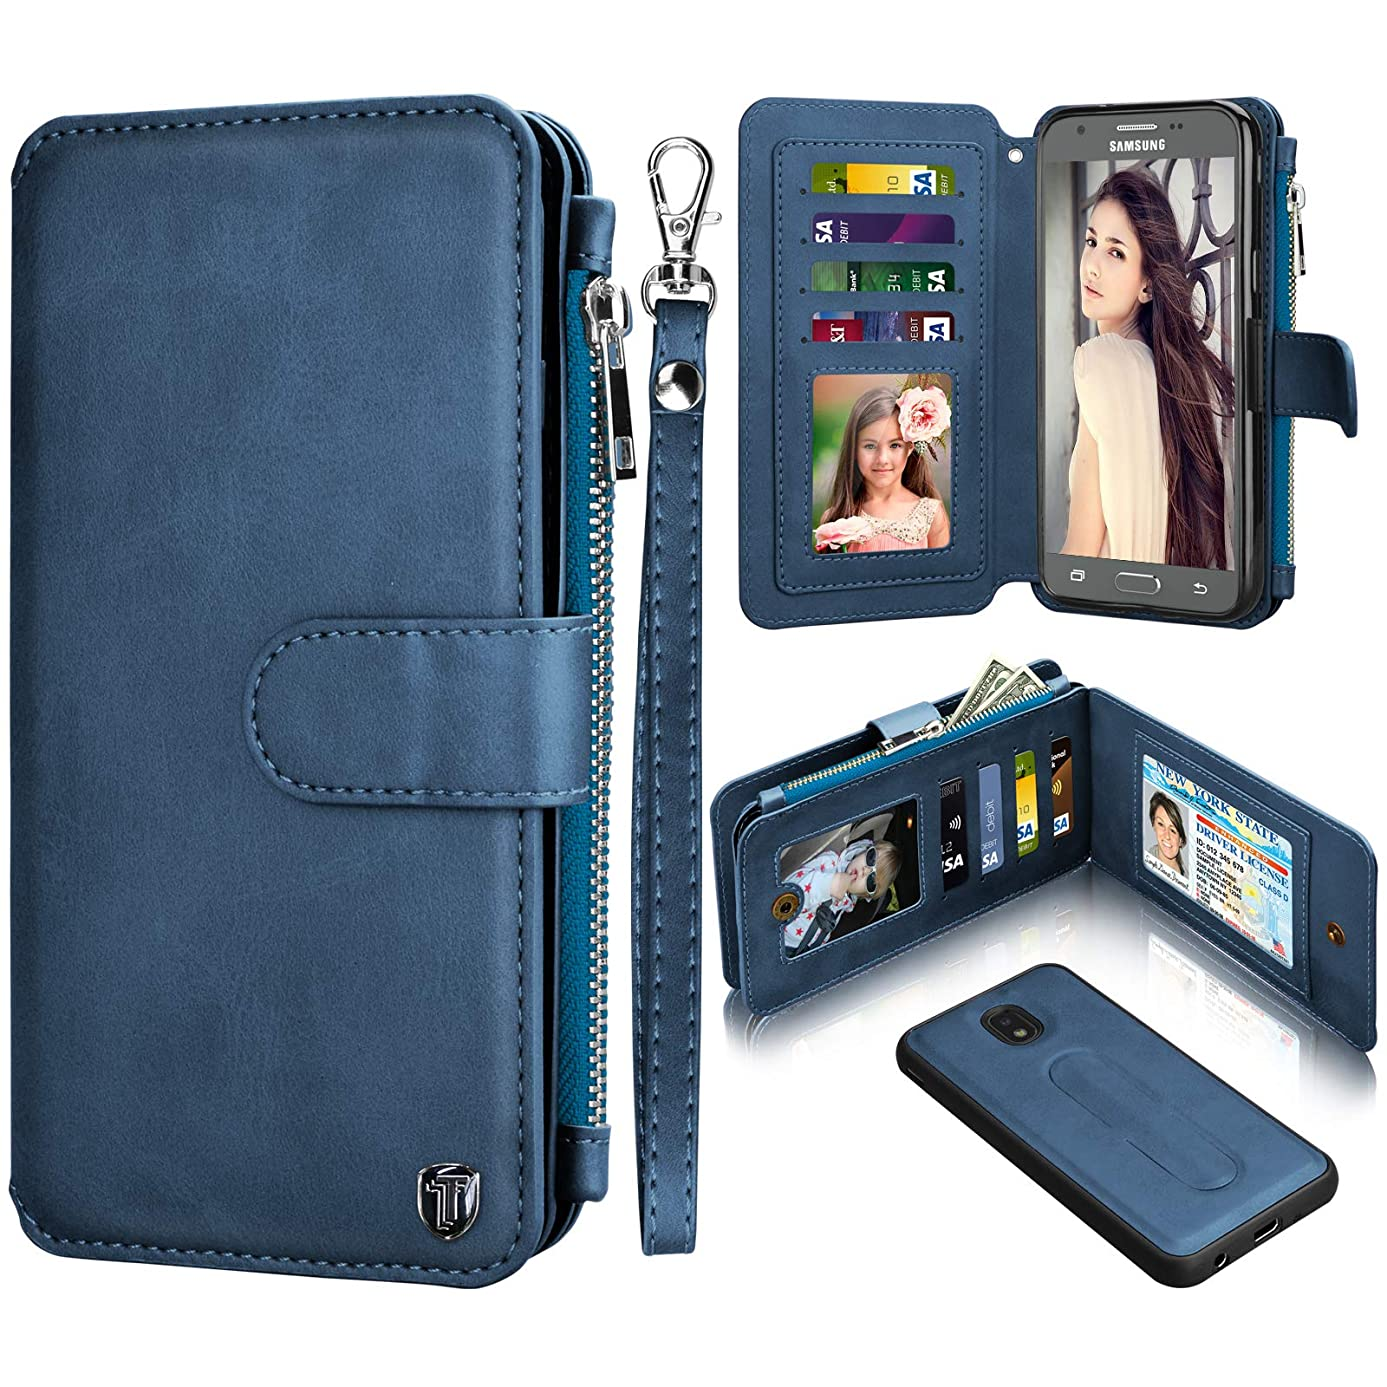 Njjex Wallet Case for Samsung Galaxy J7 2018, for Galaxy J7 Refine/J7 V 2nd Gen/J7 Aero/J7 Aura/J7 Top/J7 Crown/J7 Eon/J7 Star, PU Leather Card Slots Holder Zipper Purse Magnetic Flip Cover [Navy]